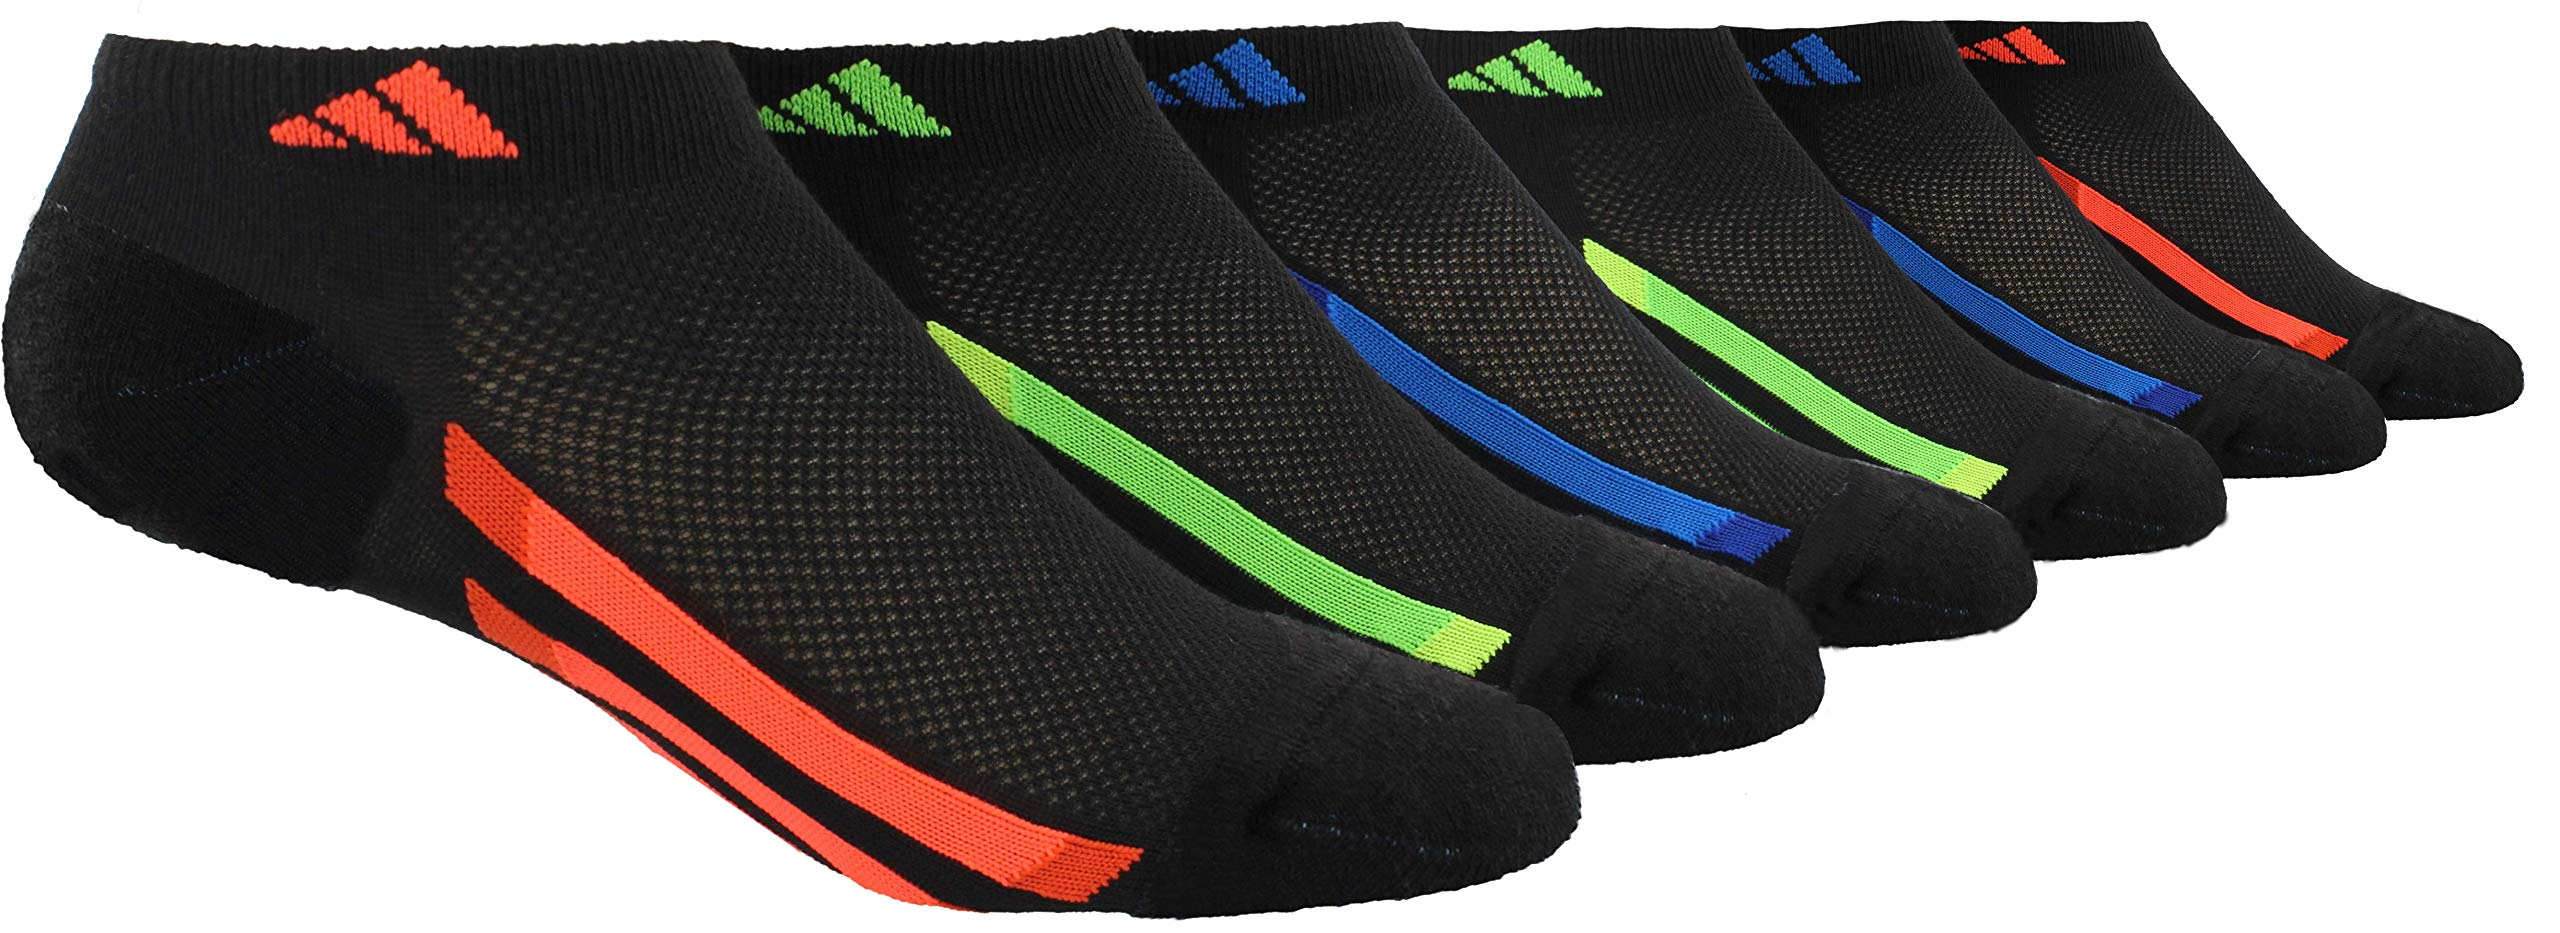 adidas Youth Kids-Boy's/Girl's Cushioned Low Cut Socks (6-Pair), Black/Solar Red/Bold Orange/Solar Green/Solar Yell, Large, (Shoe Size 3Y-9) by adidas